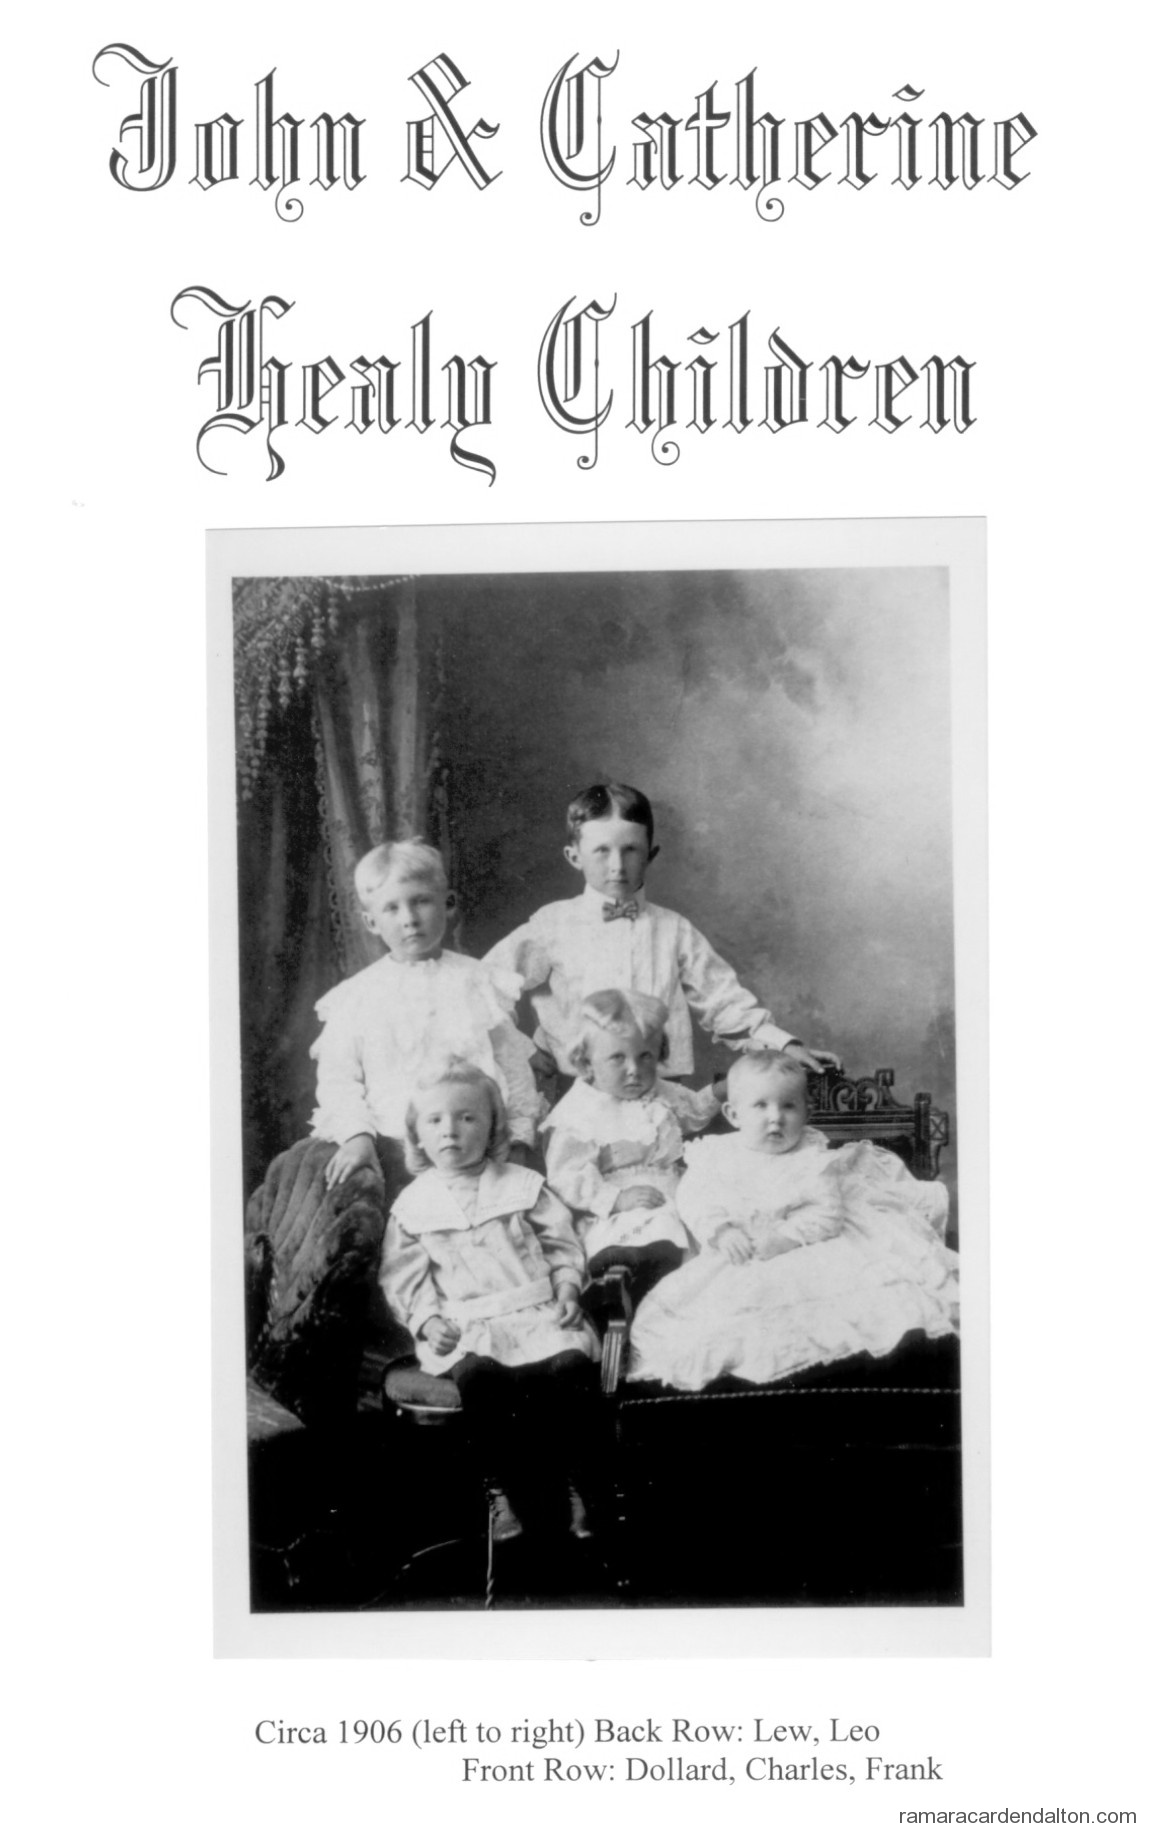 John & Catherine Healy Children